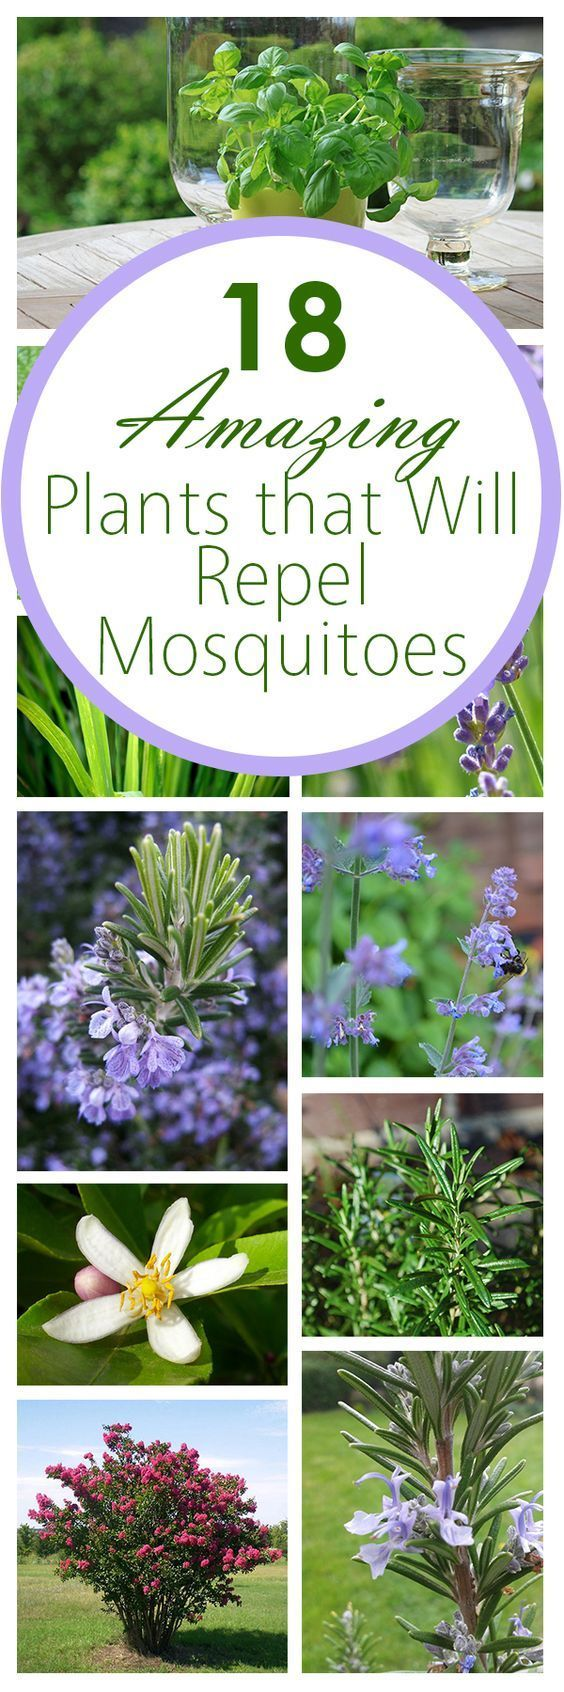 18 amazing plants that will repel mosquitos bees and roses gardens of earthly delights. Black Bedroom Furniture Sets. Home Design Ideas